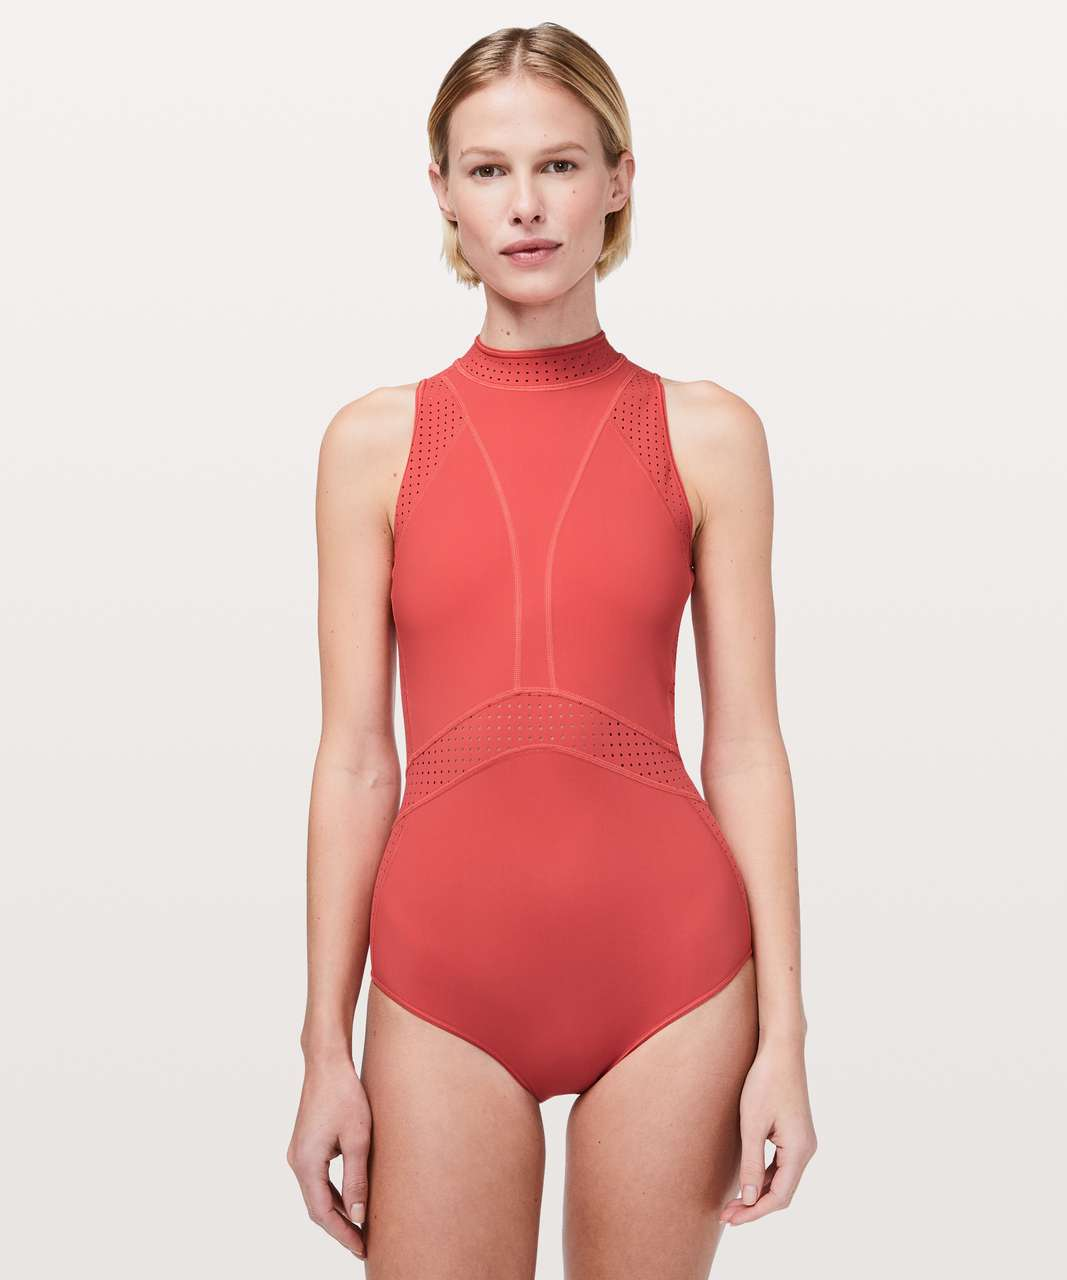 Lululemon Beach Break Paddlesuit - Poppy Coral